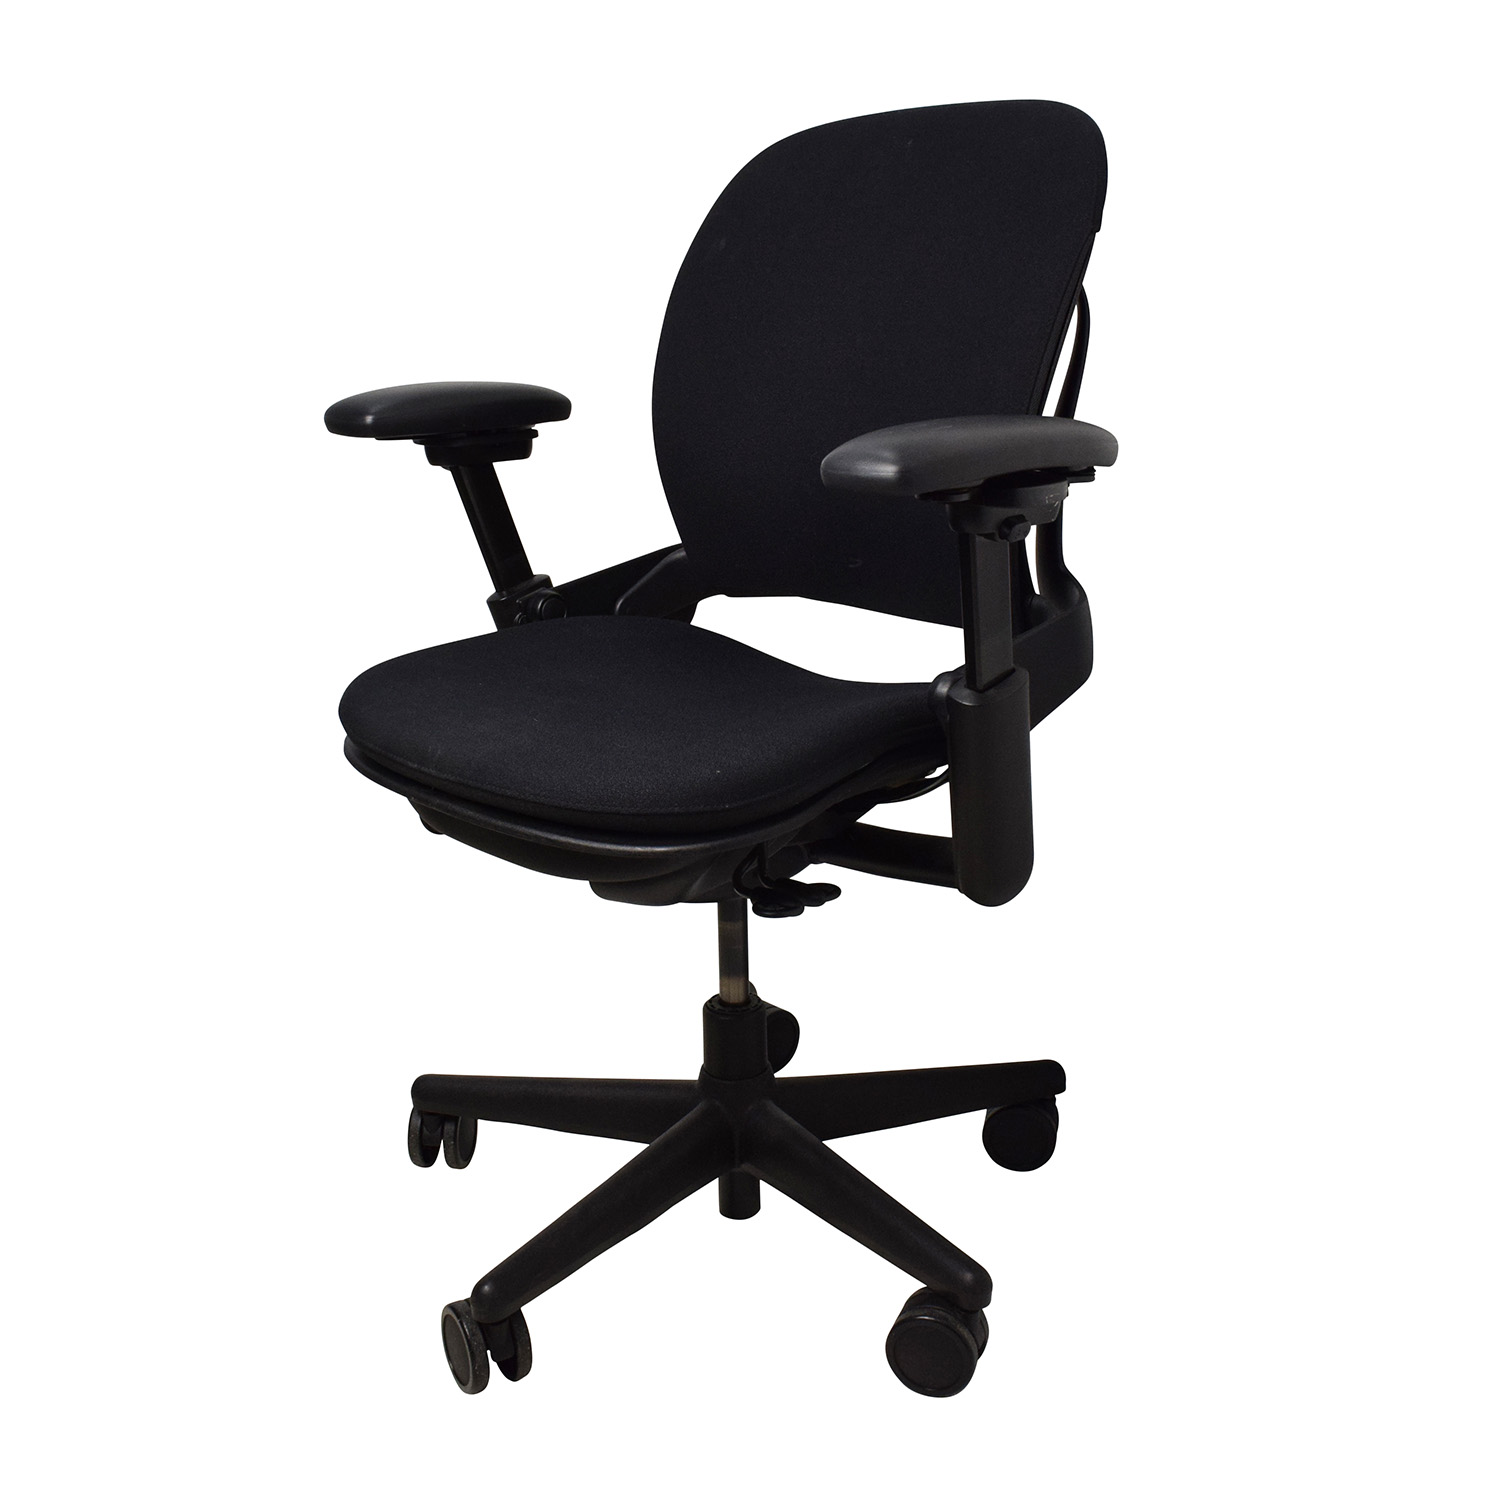 Black Desk Chair 71 Off Adjustable Black Office Desk Chair Chairs